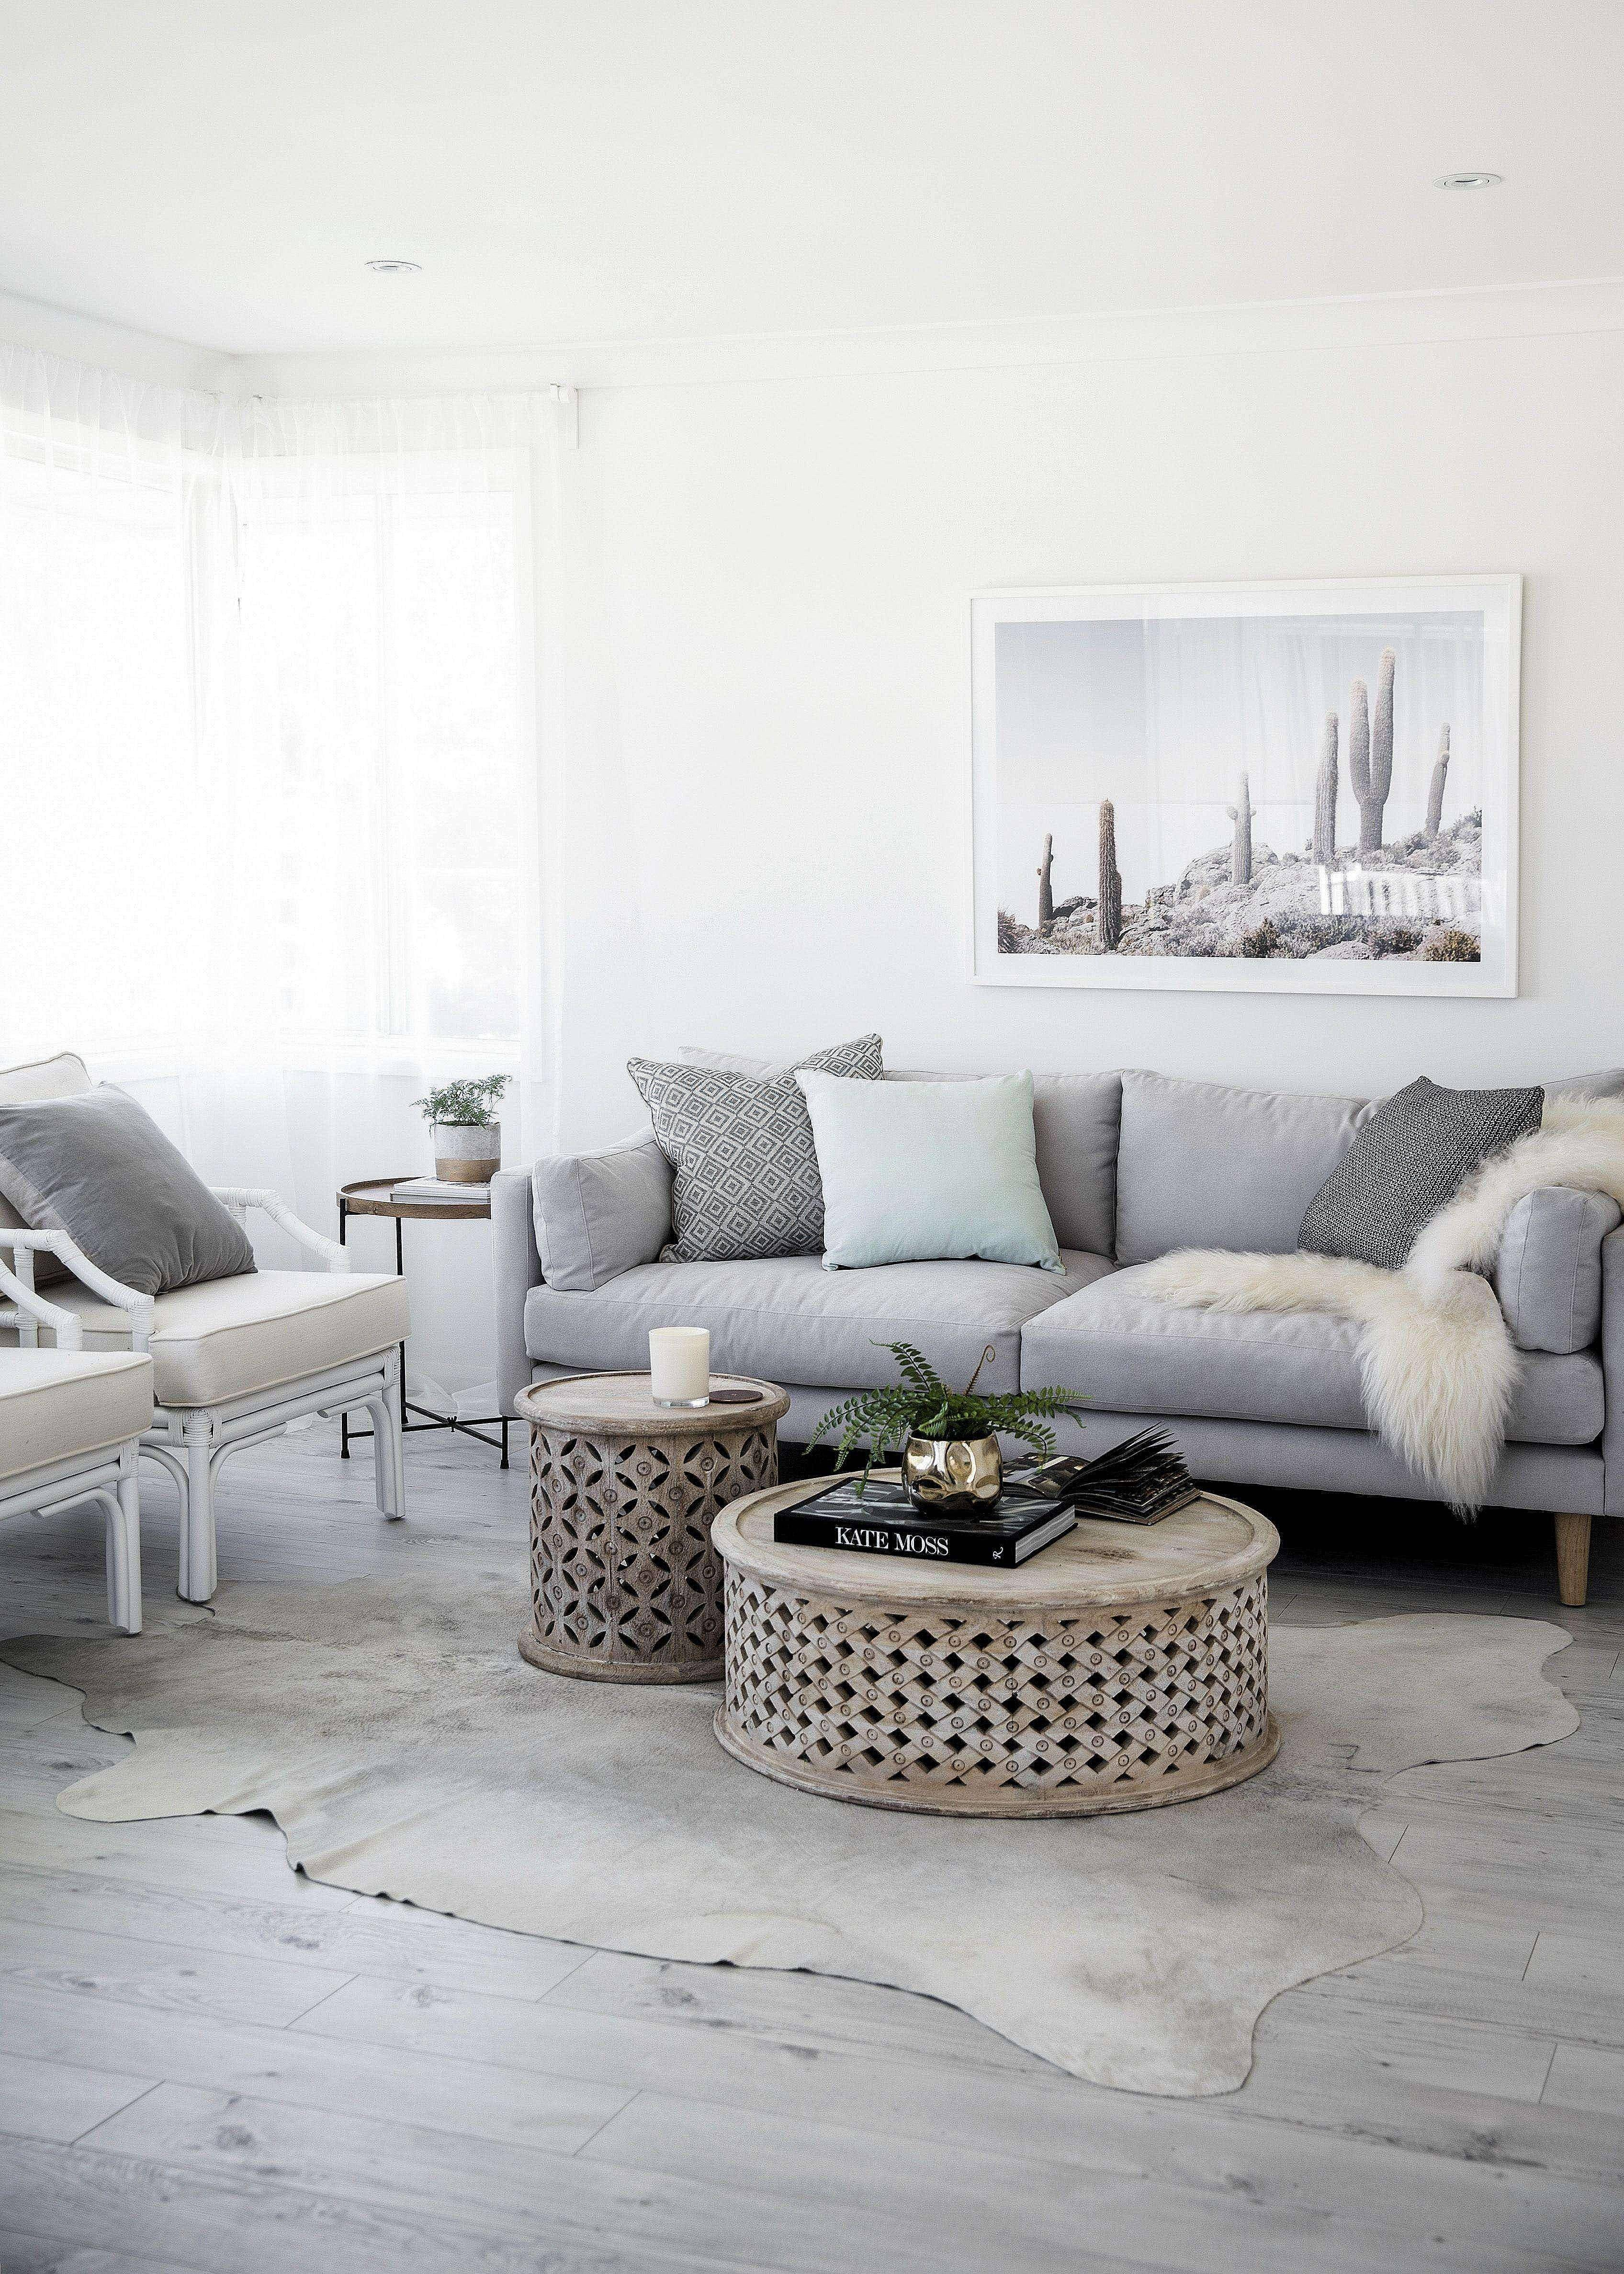 grey living room ideas 2019 lovely new living room ideas for apartment of grey living room ideas 2019